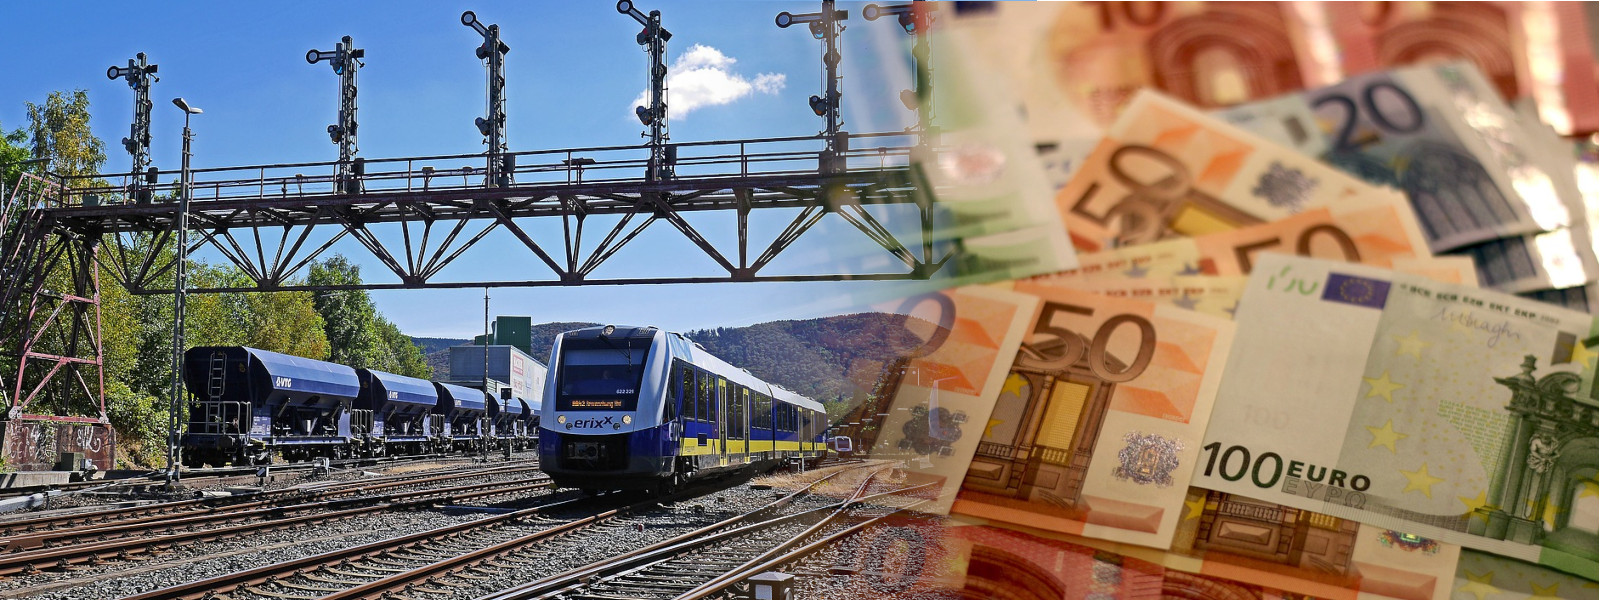 Collage of Erixx trainset at Bad Harzburg Exit Signals with Euro Bank Notes (© railML.org/Alexander Wolf with Pixabay images)